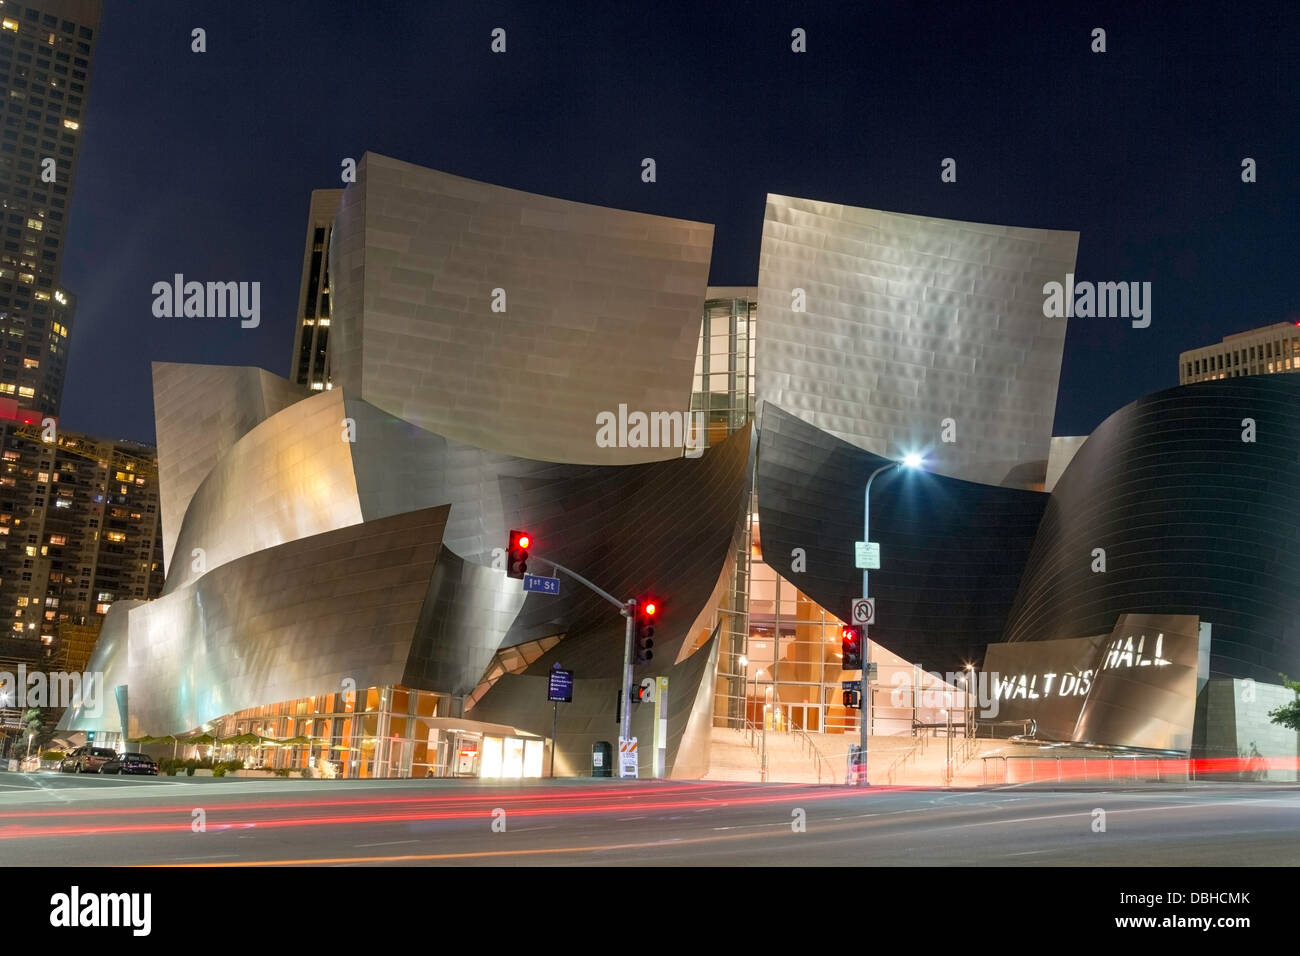 Walt Disney Concert Hall in Los Angeles, California Stock Photo